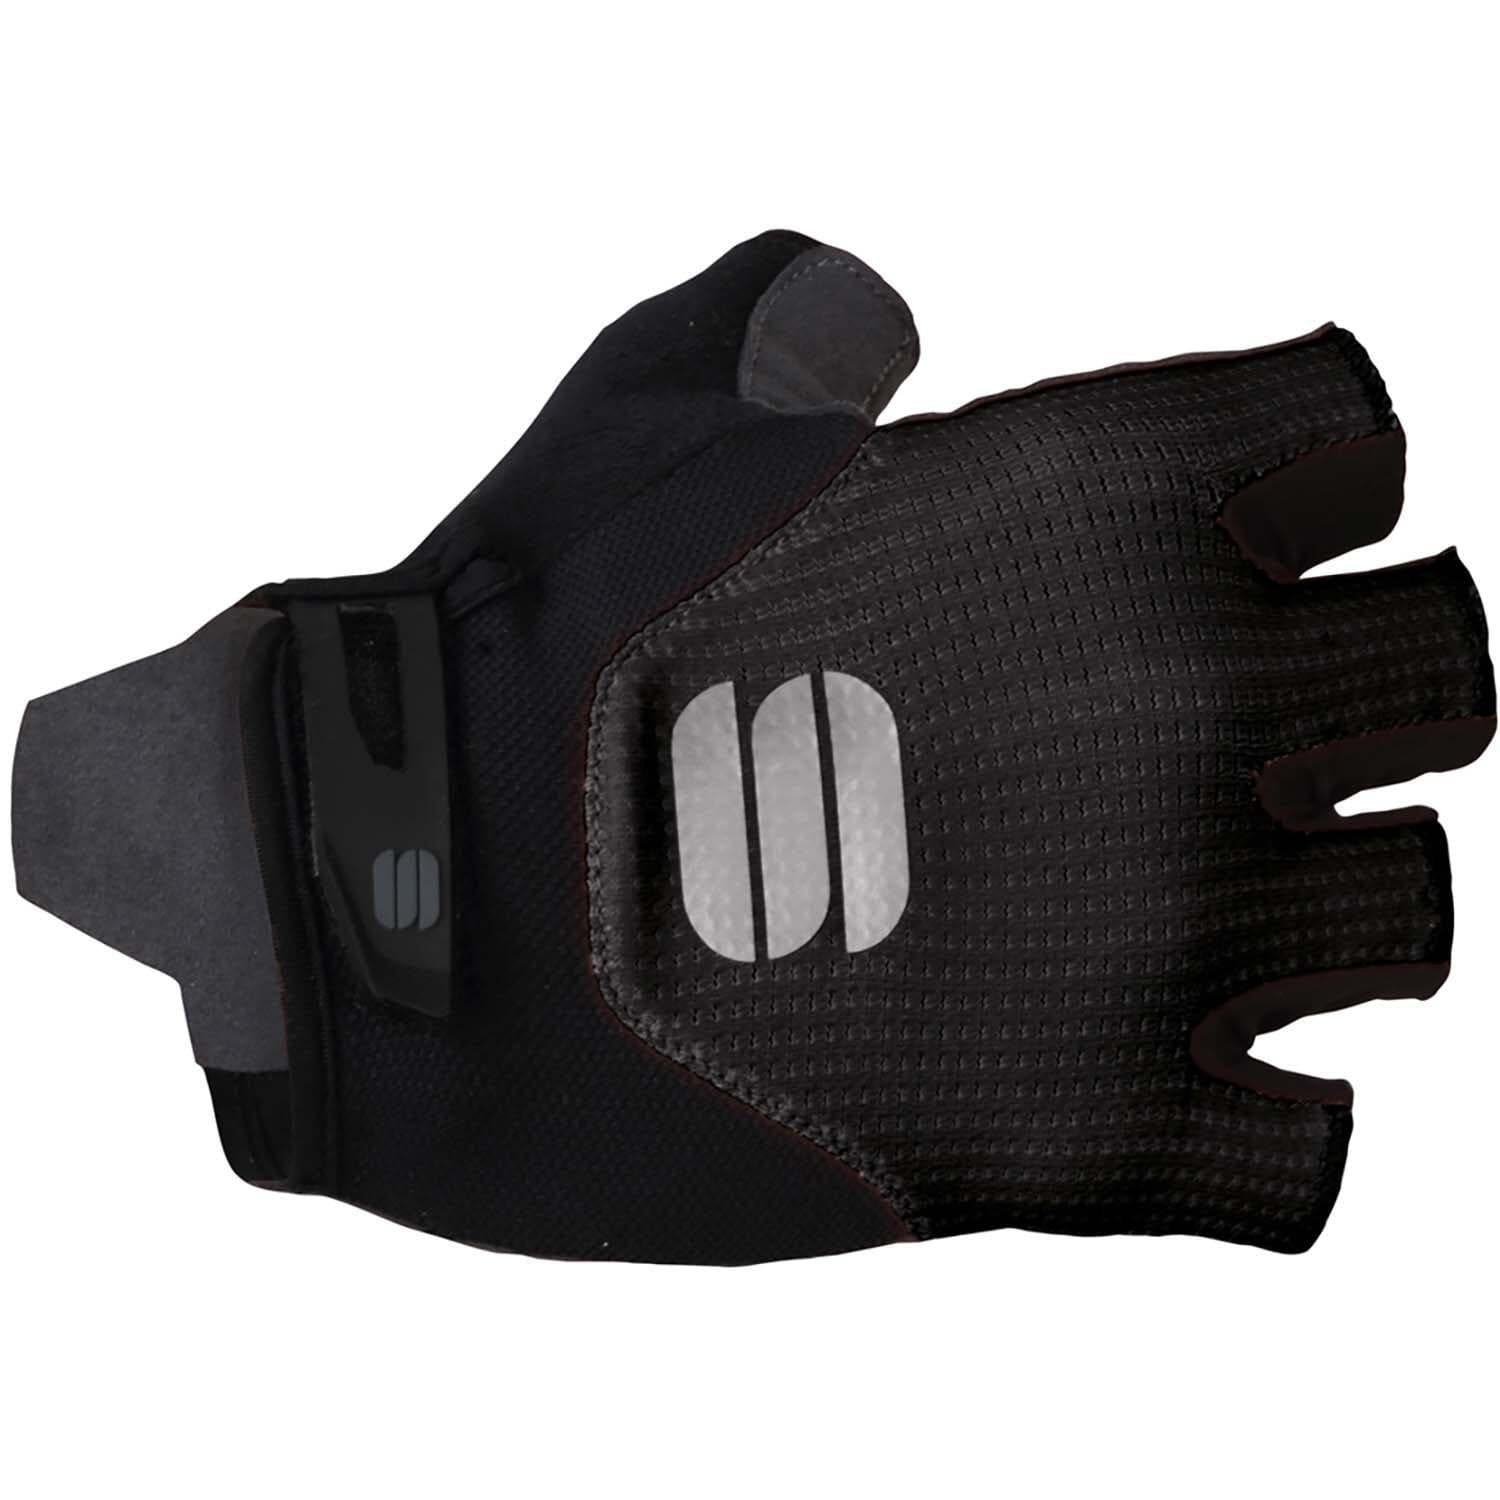 Sportful-Sportful Neo Gloves-Black-XS-SF020530021-saddleback-elite-performance-cycling